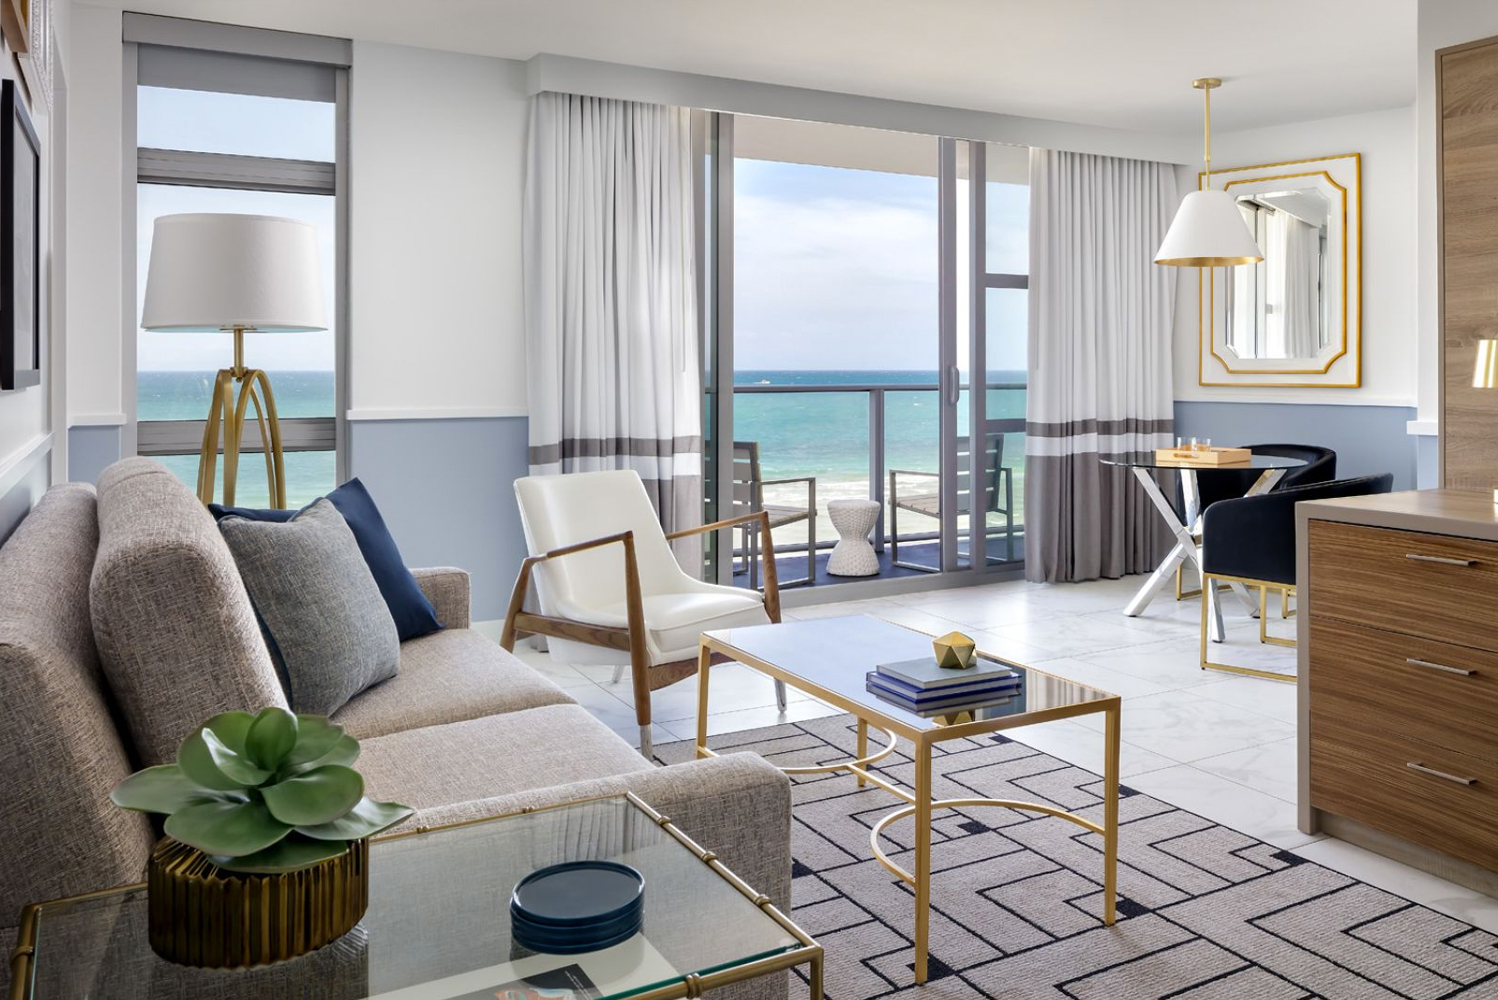 Autograph Collection Hotels, part of Marriott International, with REIT Hersha Hospitality Trust opened Cadillac Hotel & Beach Club.